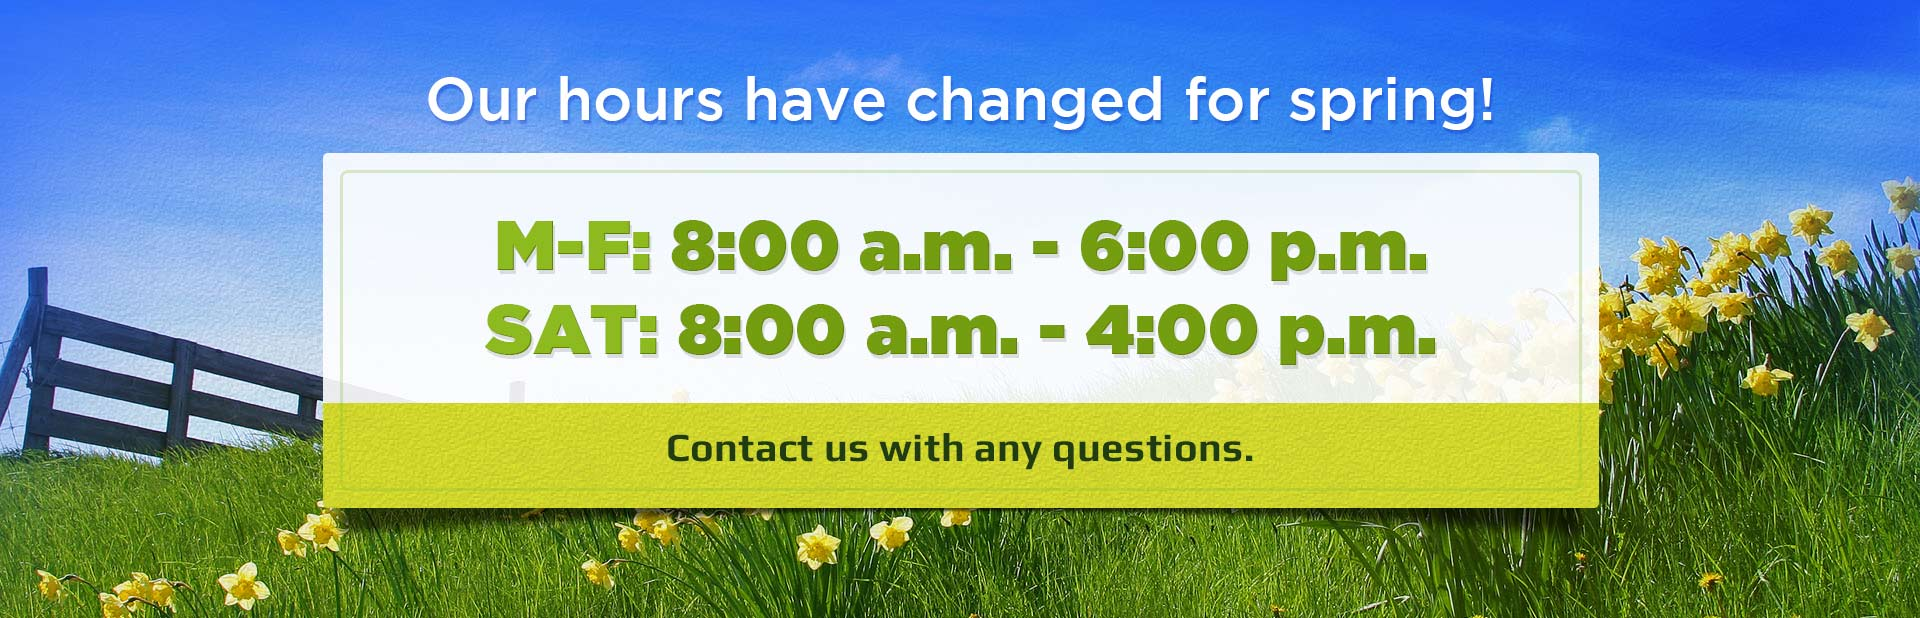 Our hours have changed for spring! Contact us with any questions.